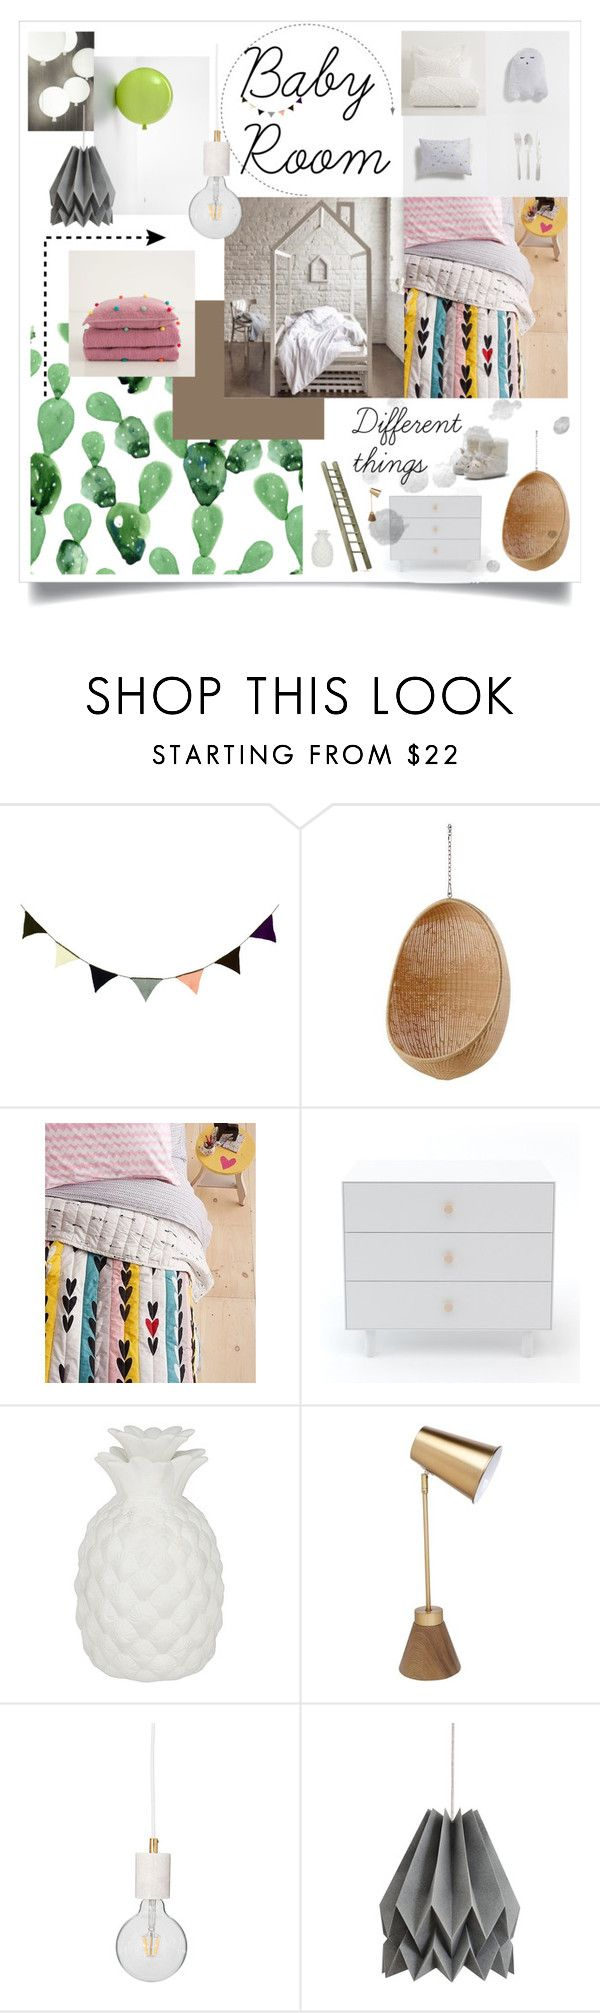 Baby Room by masha-petrushova on Polyvore featuring interior, interiors, interior design, дом, home decor, interior decorating, Sika, Flamant, ferm LIVING and Oeuf